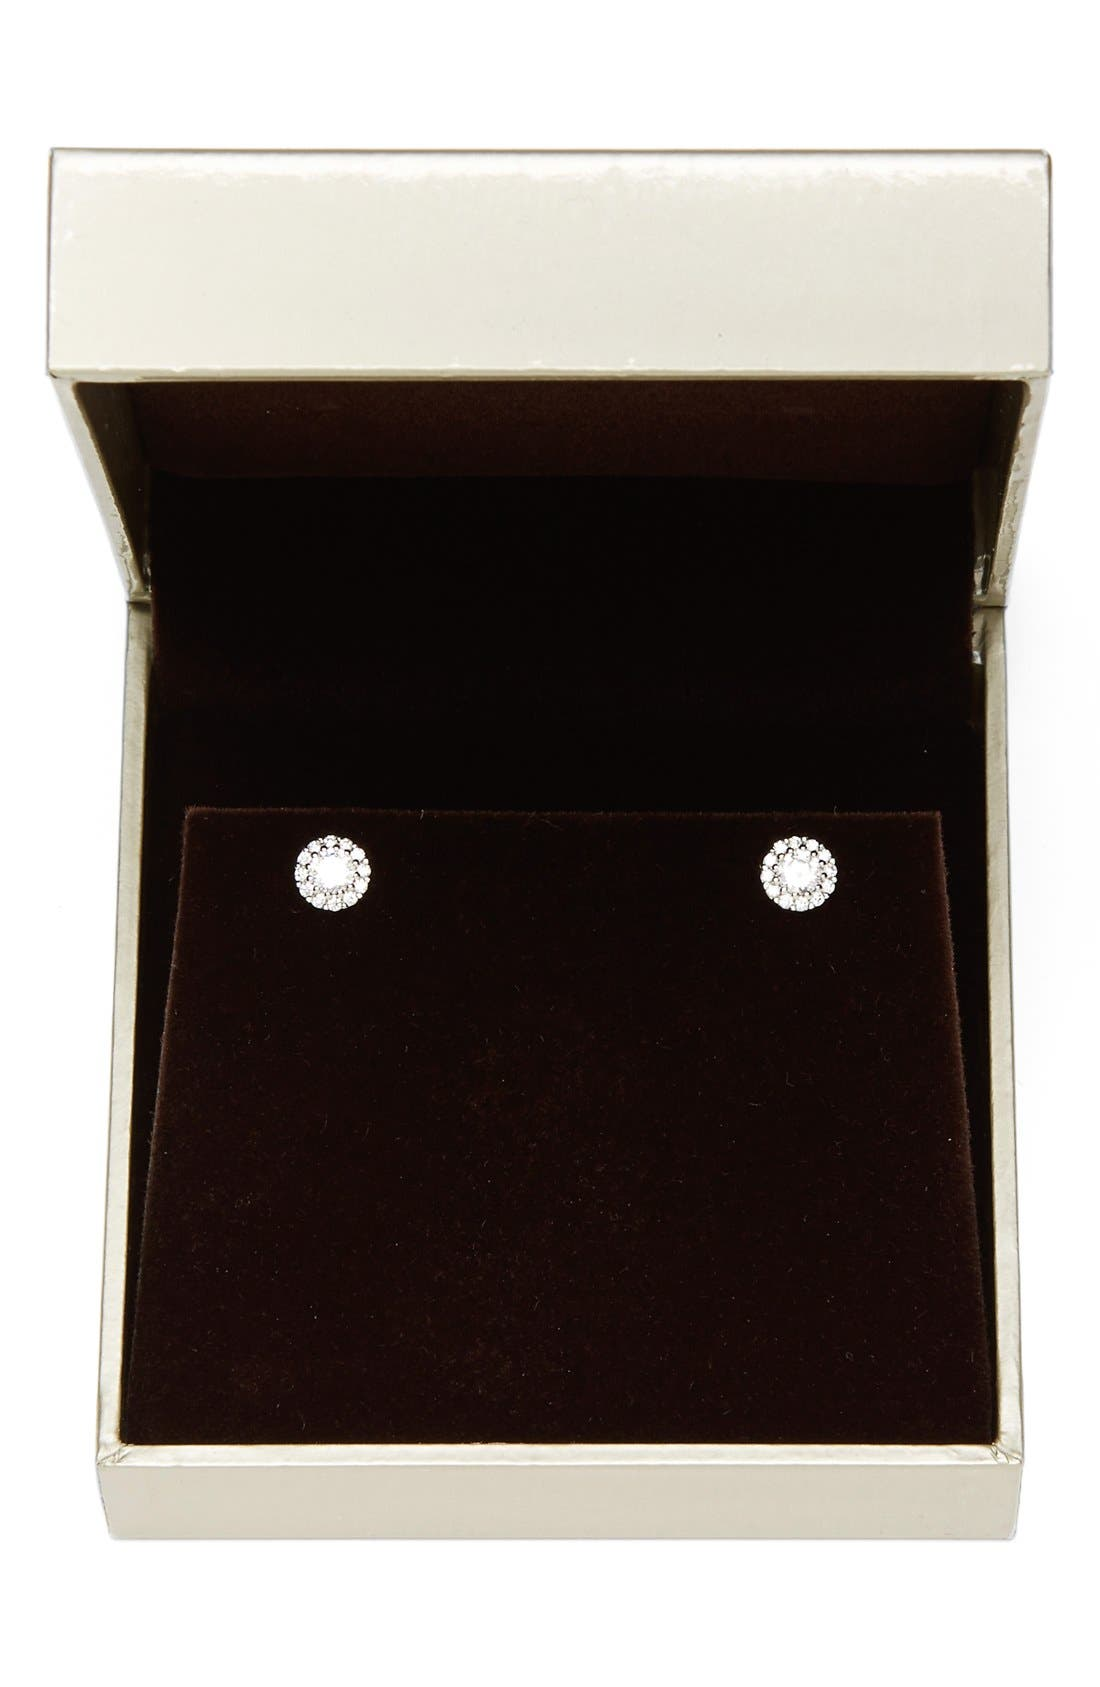 NORDSTROM,                             Precious Metal Plated Cubic Zirconia Stud Earrings,                             Alternate thumbnail 2, color,                             PLATINUM